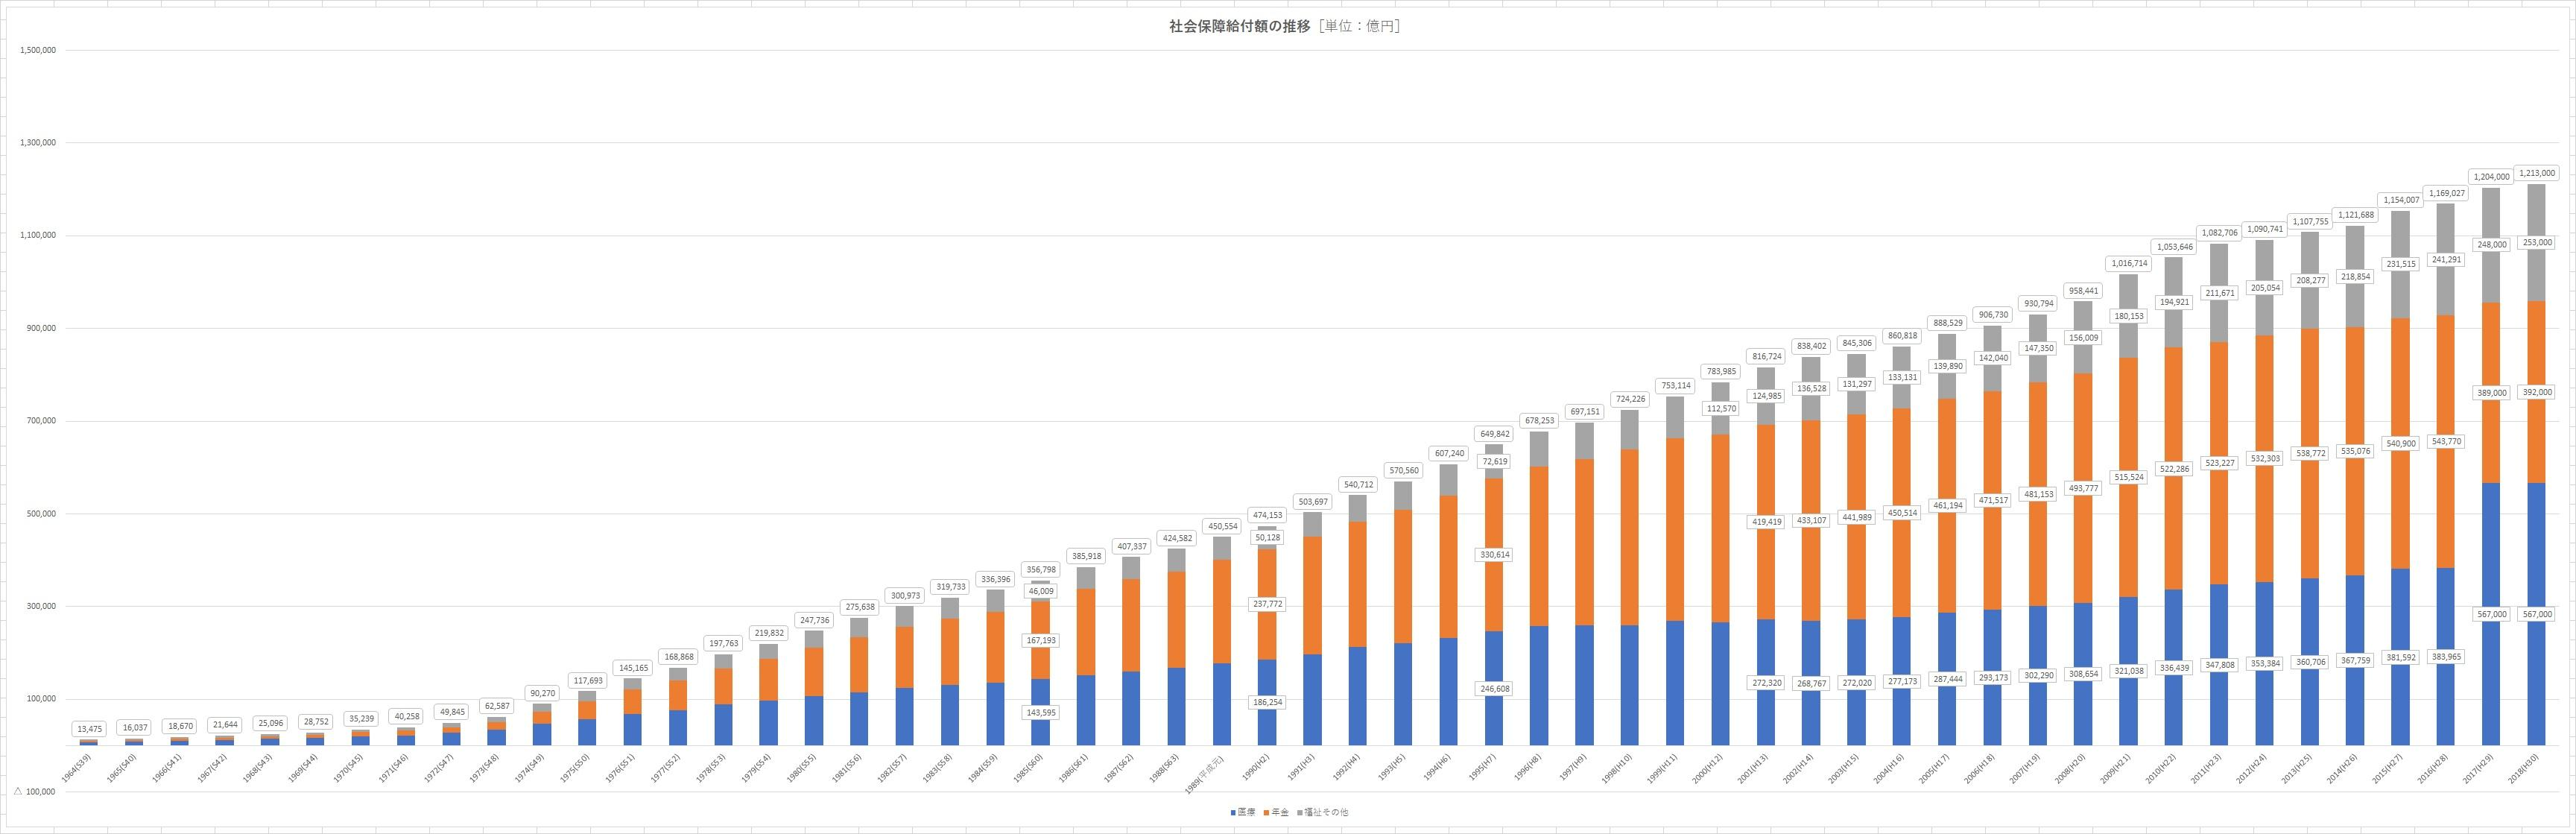 http://tablo.jp/case/img/DATA_039_graph01.jpg